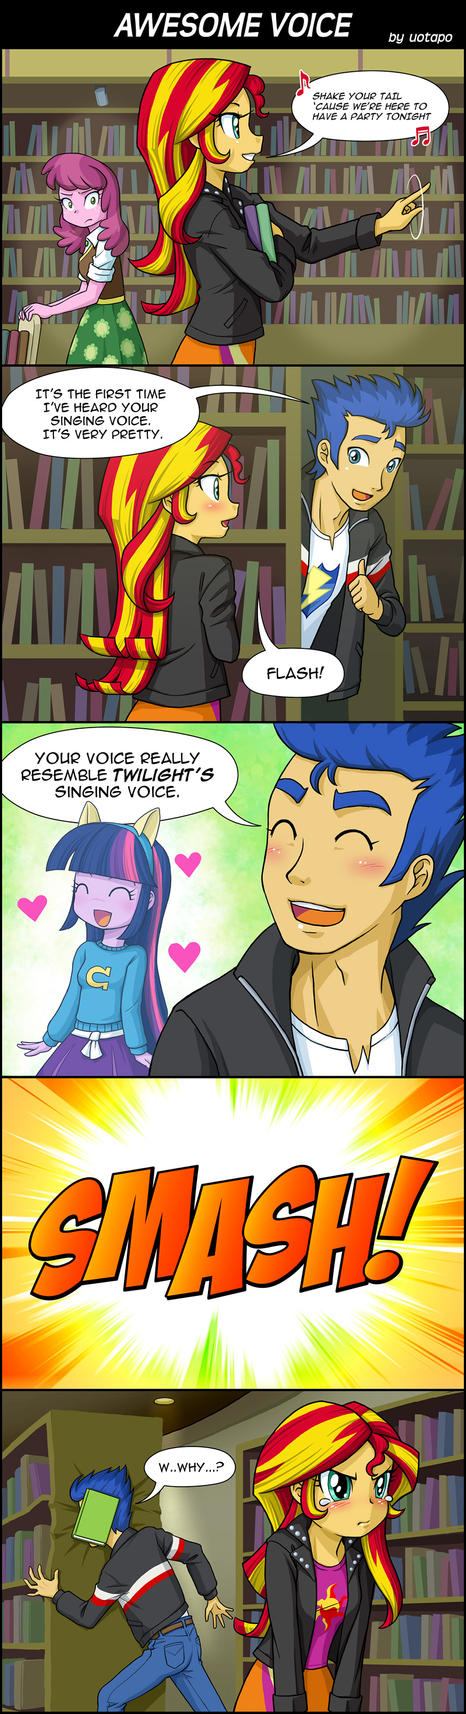 awesome_voice_by_uotapo-d7haqva.jpg